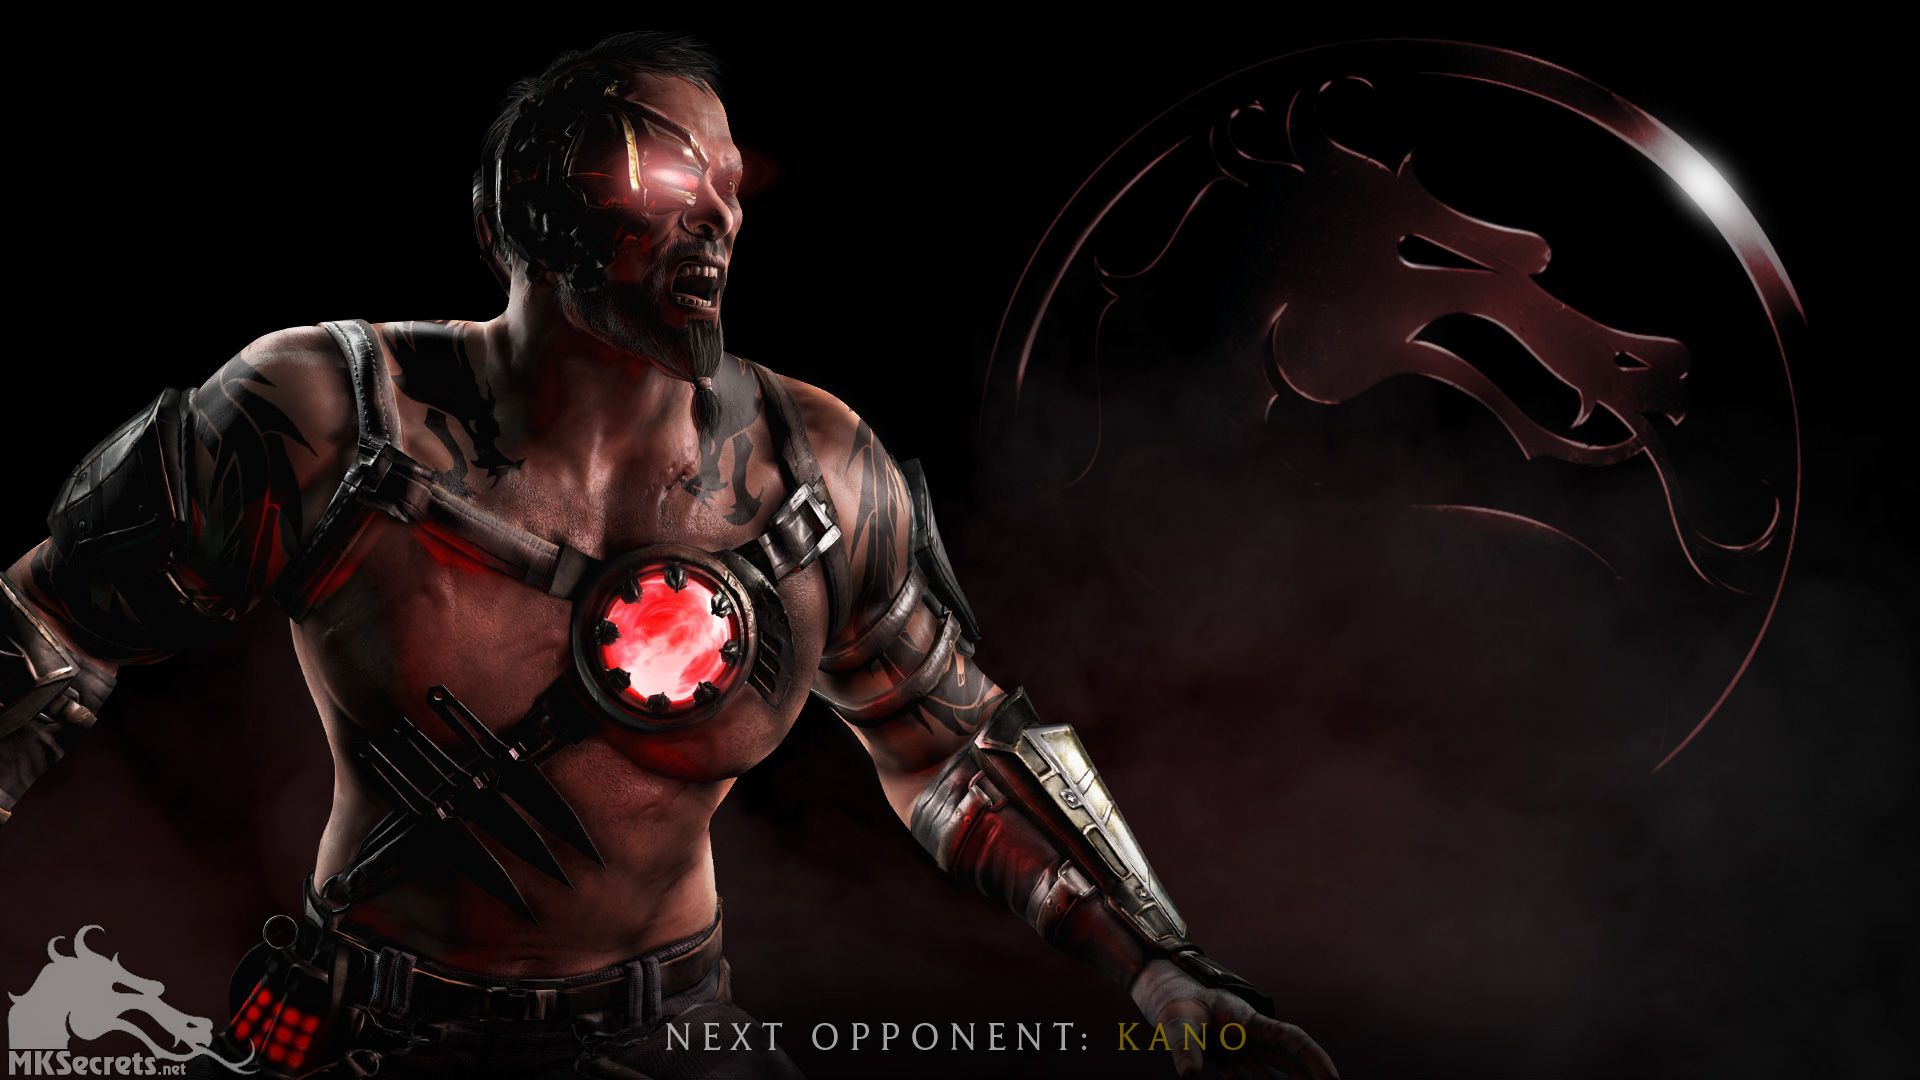 Mortal Kombat X Characters Wallpapers Mortal Kombat X Mortal